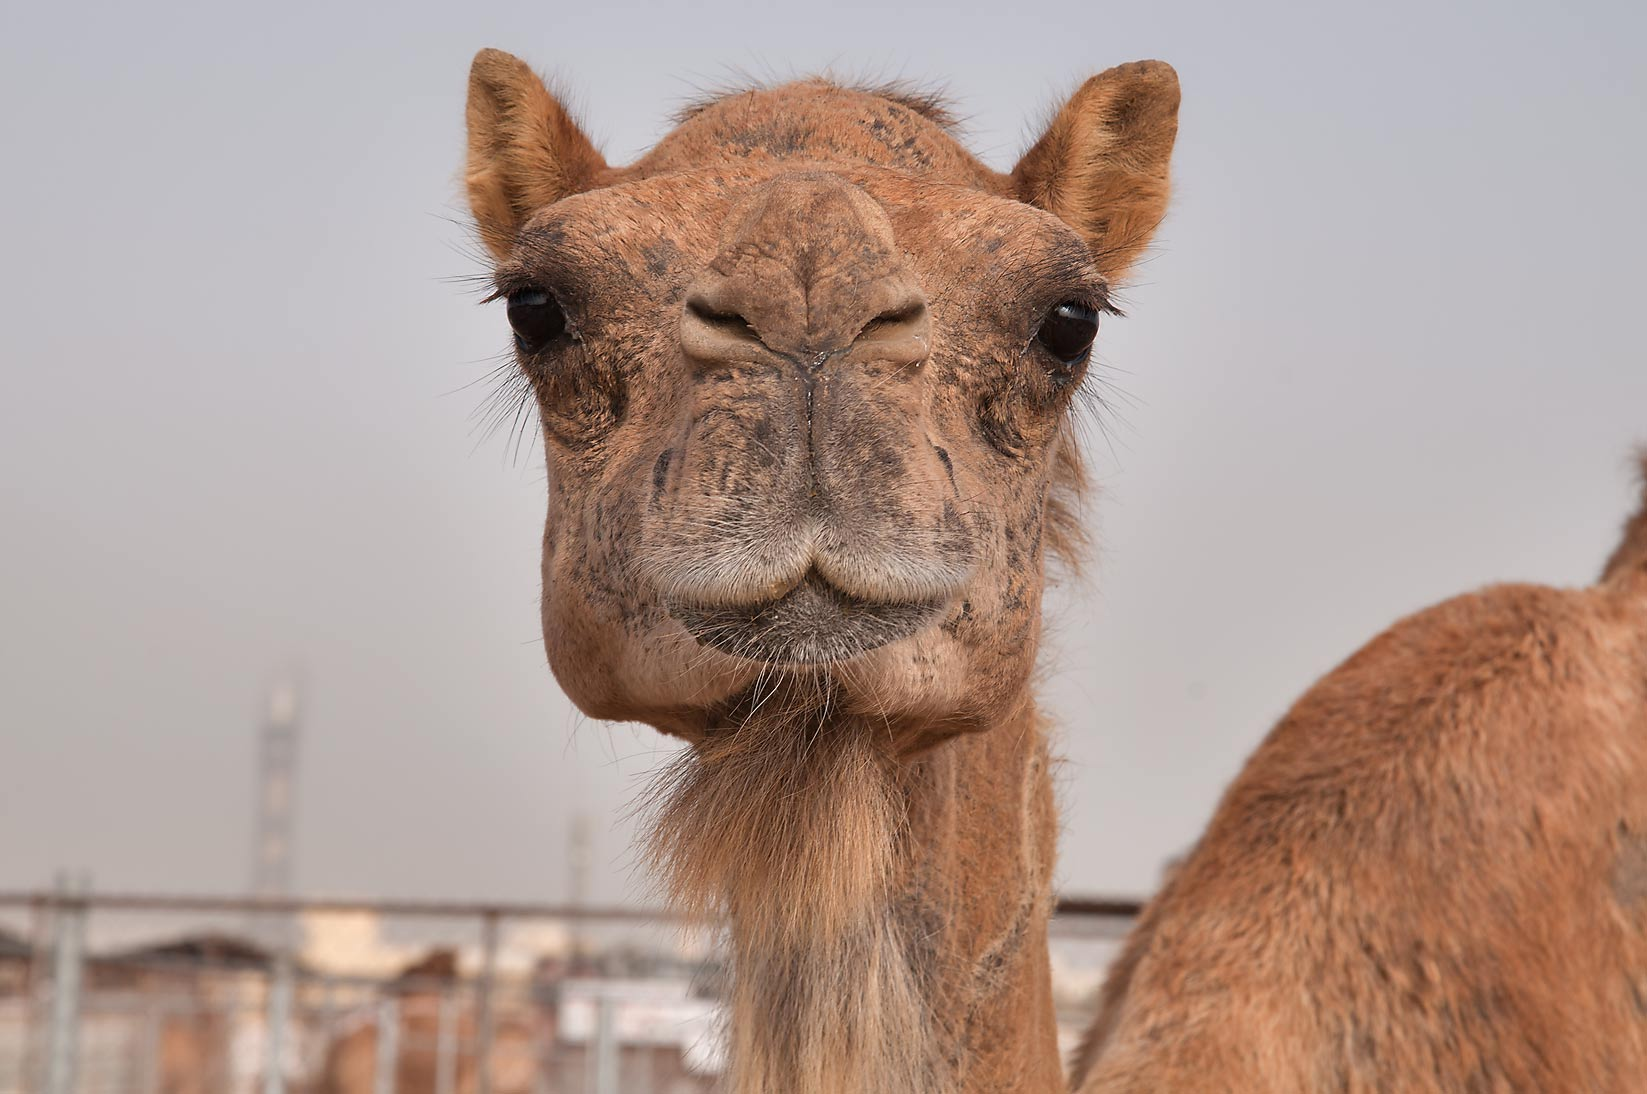 Brown camel in Wholesale Animal Market. Doha, Qatar